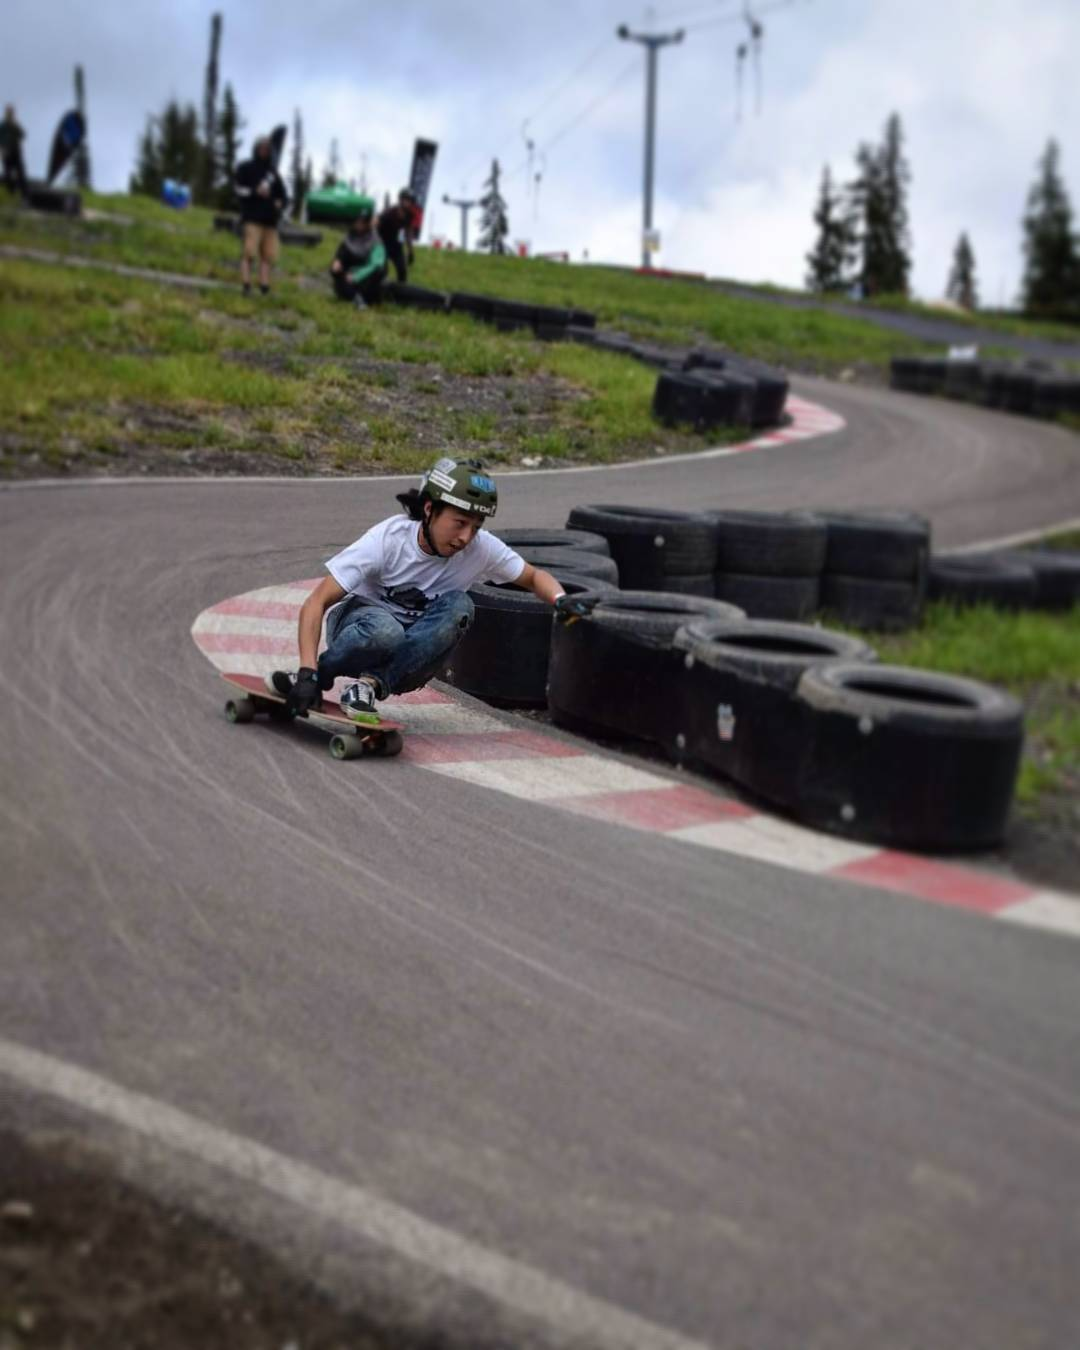 Along with the tight corners, smooth pavement, and magic carpet ride back to the top for the freeride at #skatesunpeaks came the time trial which @be_choi took 3rd place in! Congrats on dialing those lines, keeping out of the tires and having a great...